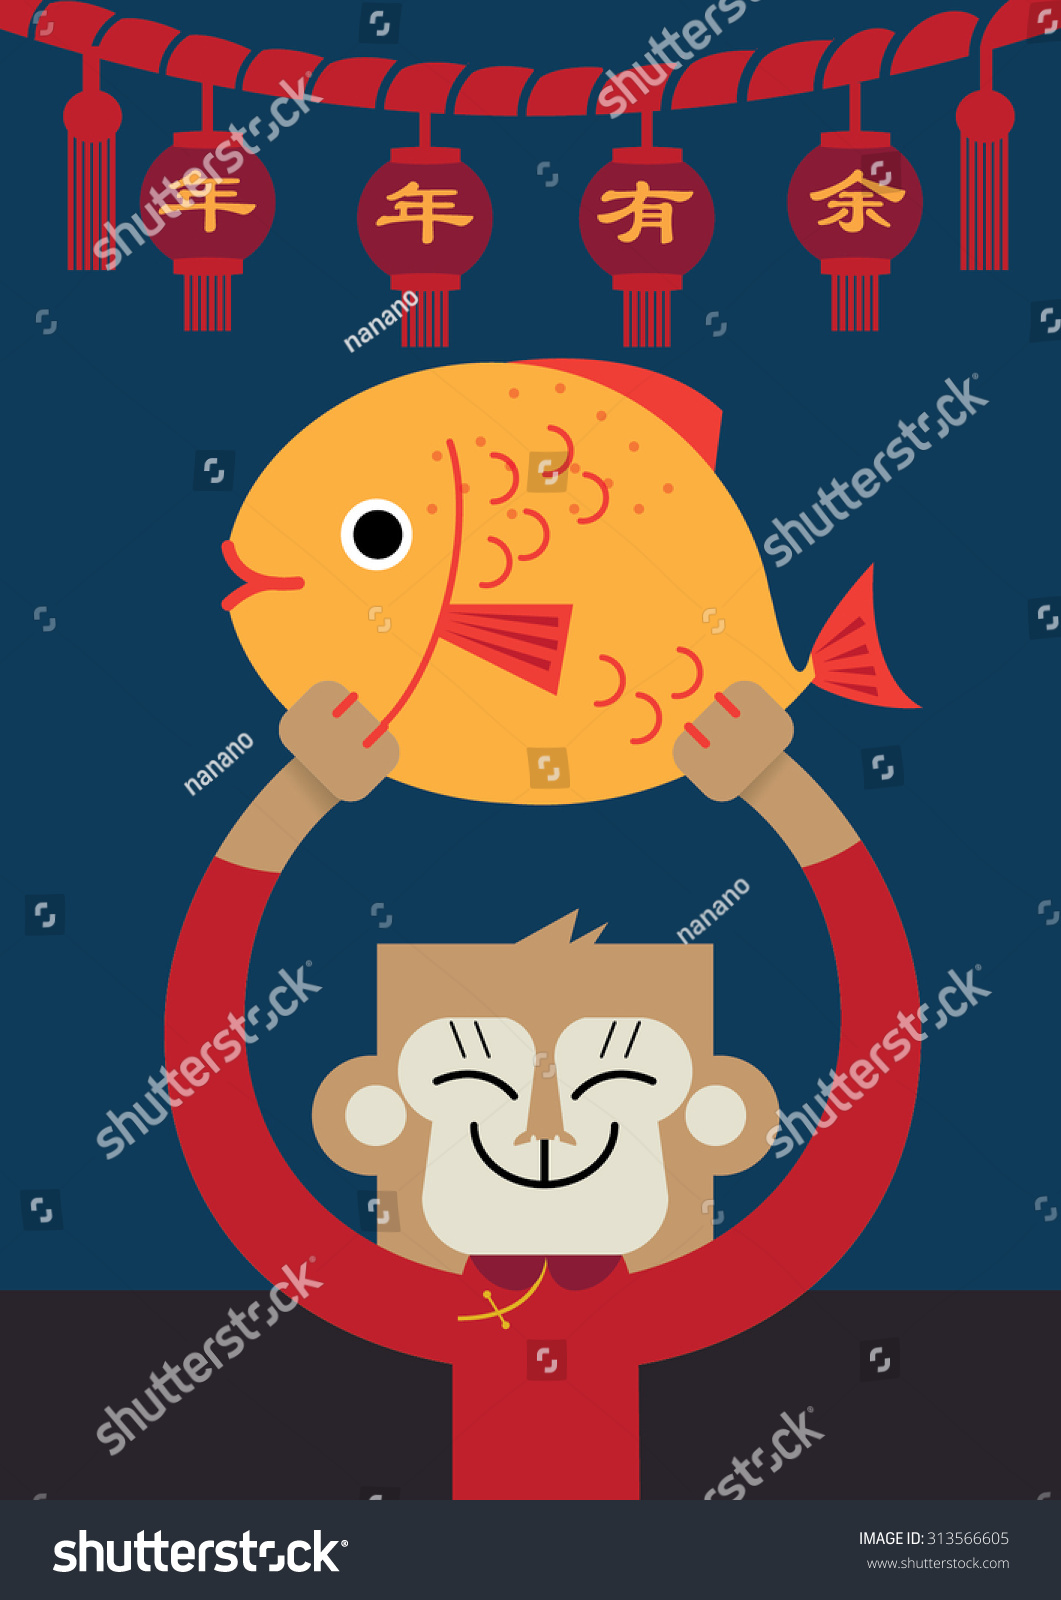 Happy chinese new year 2015 greetings stock vector 313566605 happy chinese new year 2015 greetings translation wishing you a prosperous new year kristyandbryce Choice Image